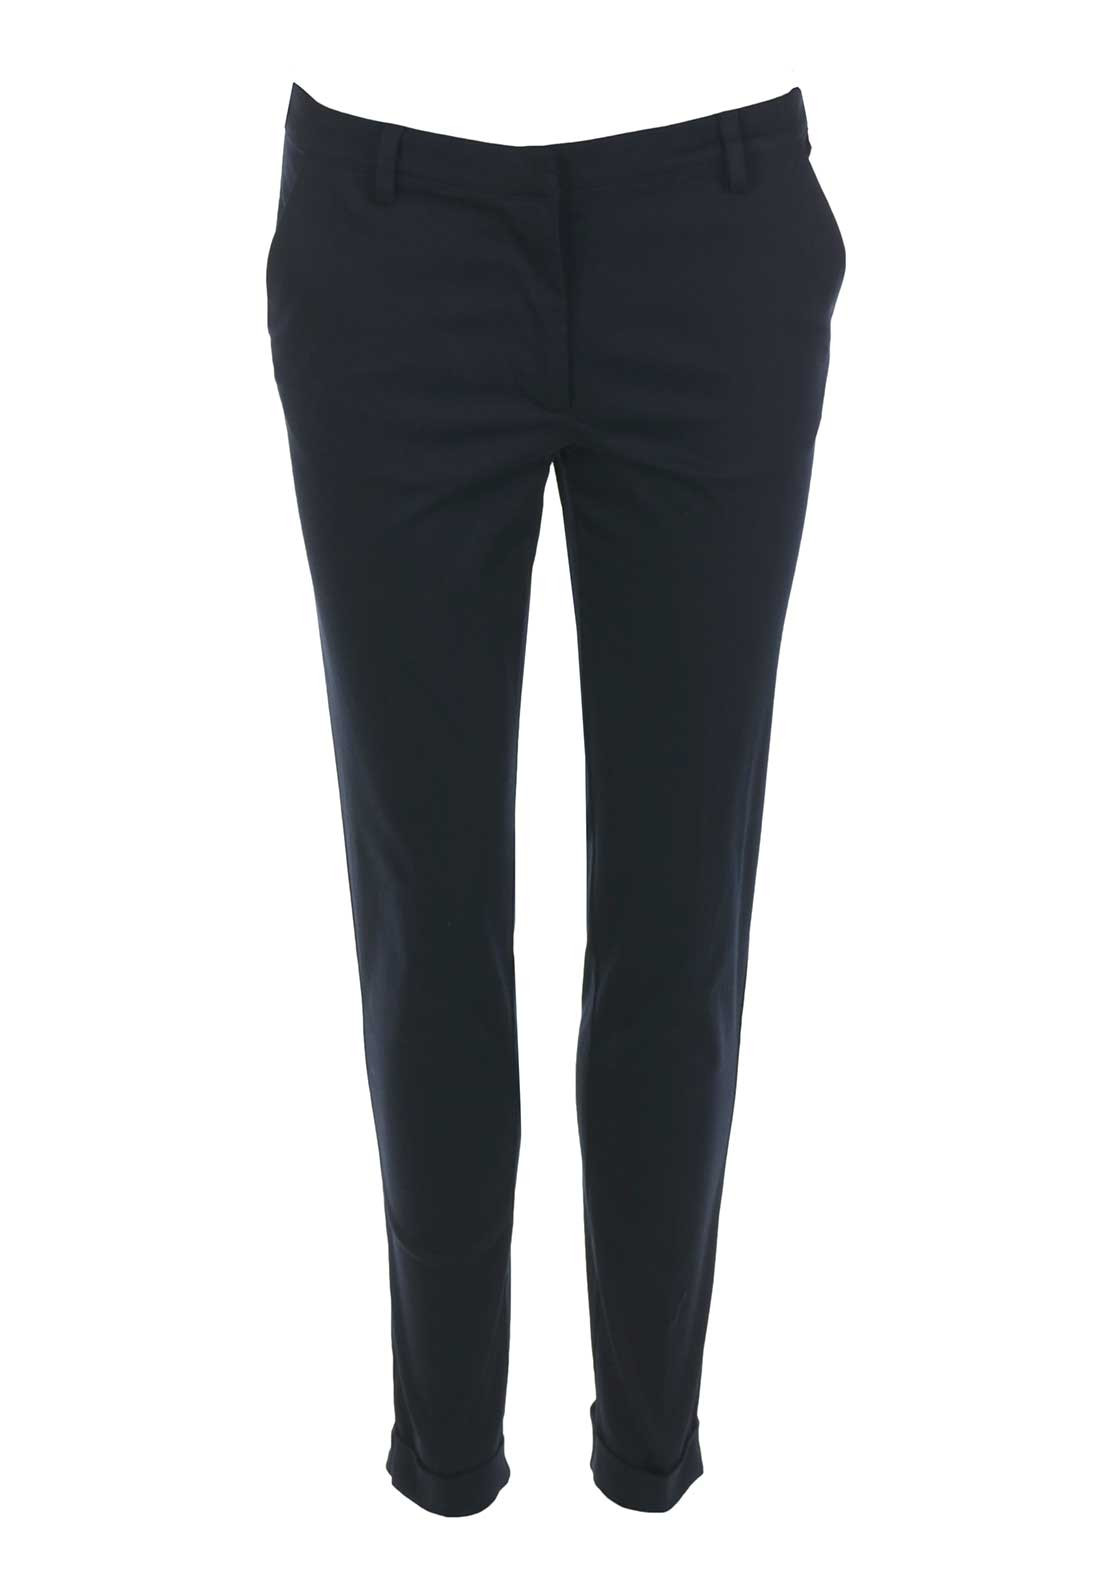 Rant & Rave Trudy Tailored 7/8 Trousers, Navy